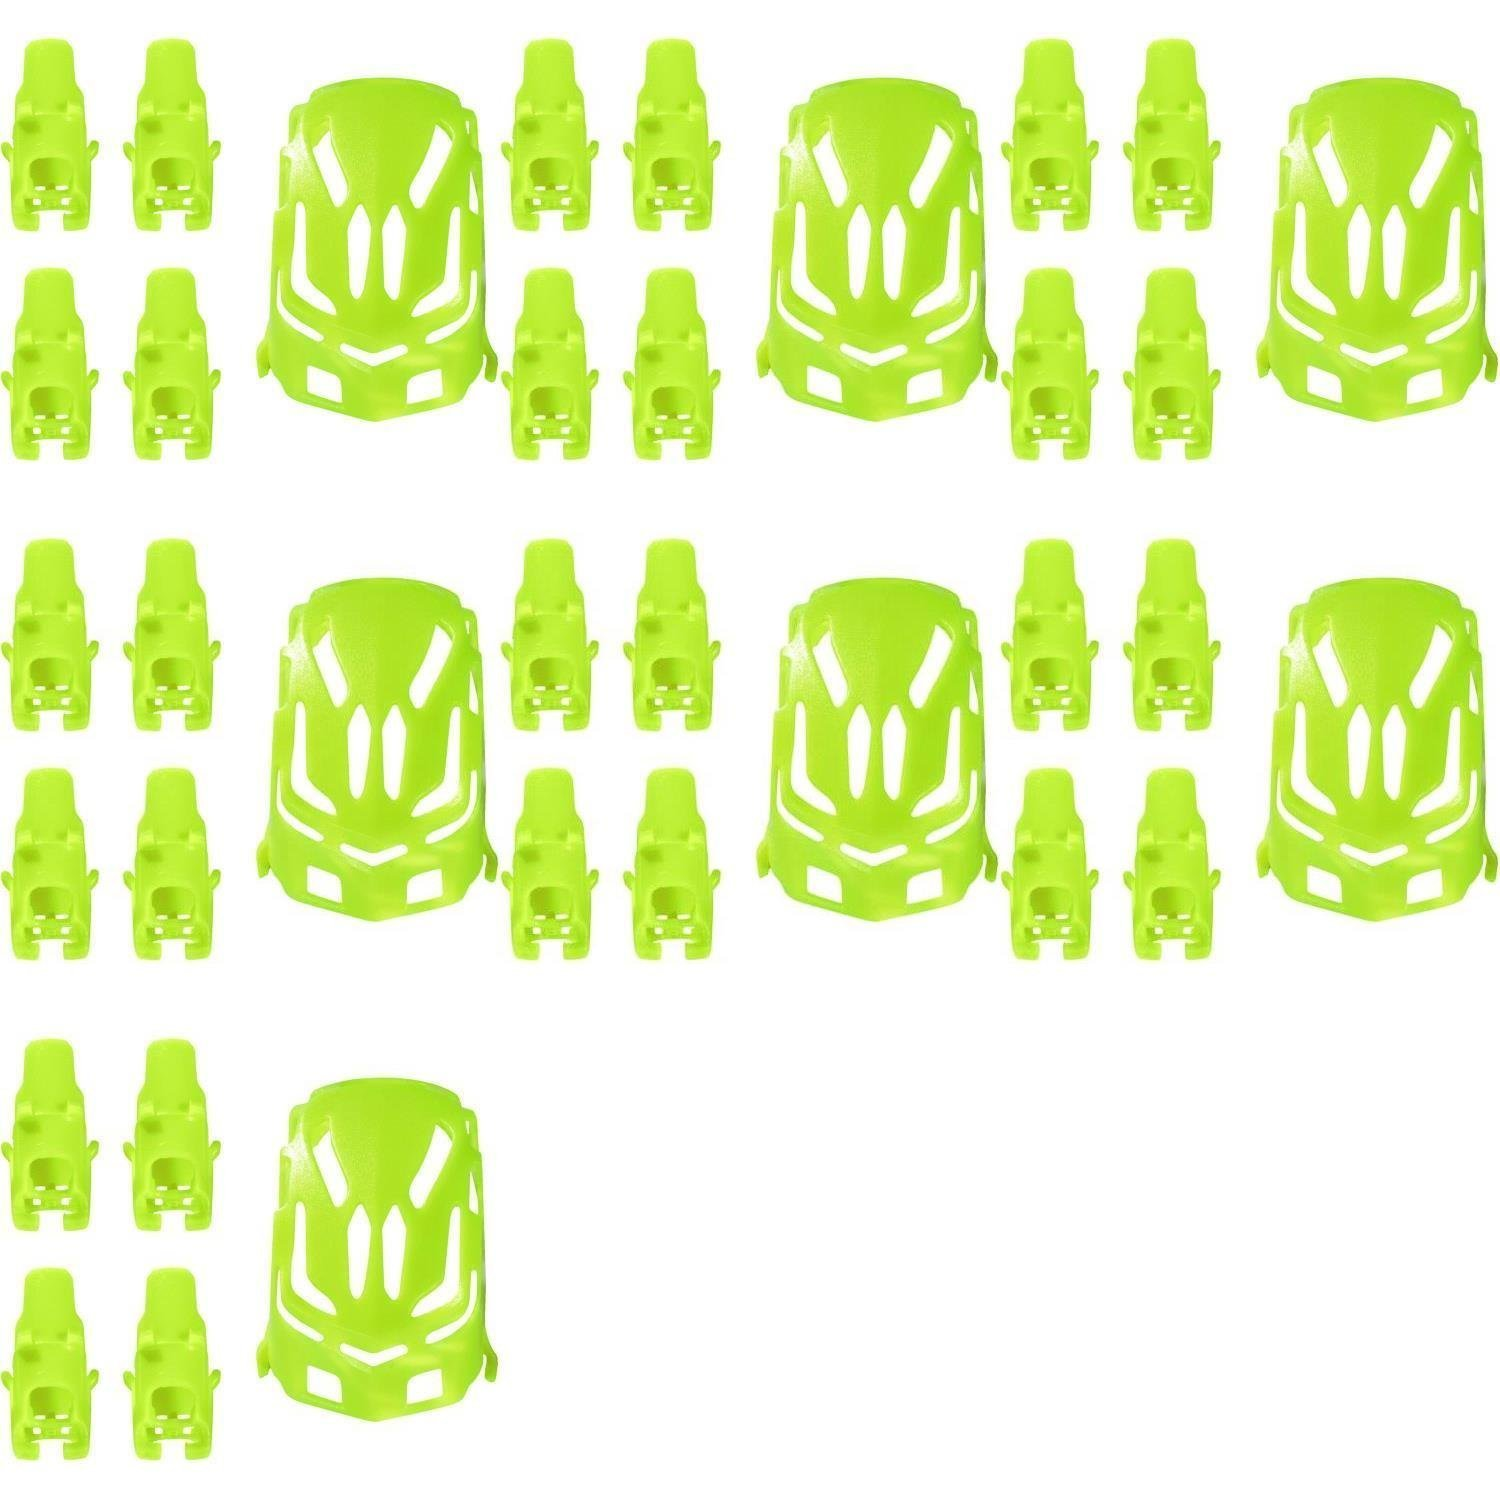 Frog Studio Home 7 x Quantity of Estes Proto-X Nano Body Shell H111-01 Green Quadcopter Frame w/Motor Supports - Fast Free Shipping from Orlando, Florida USA